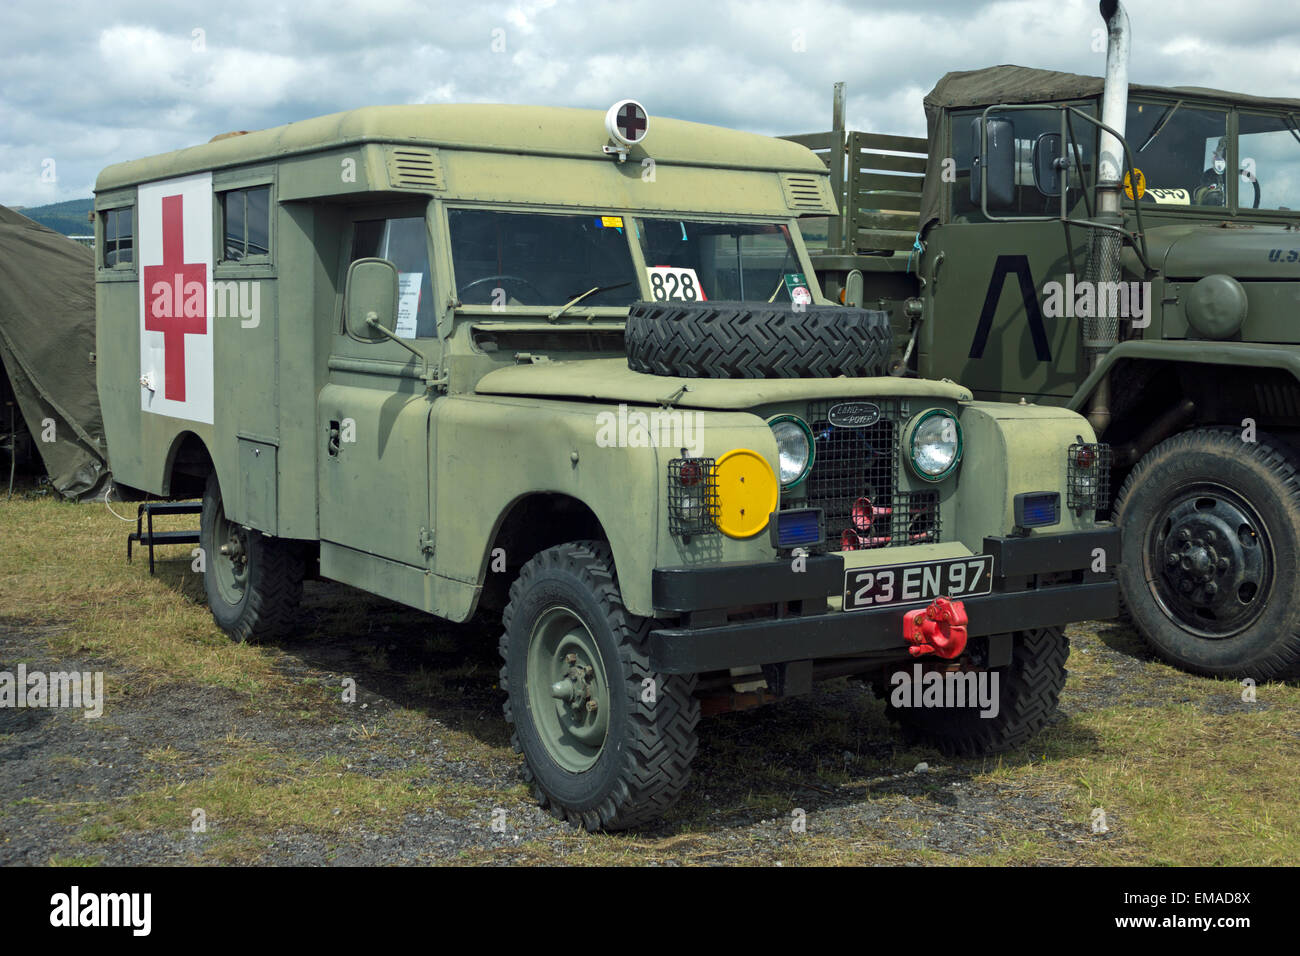 land rover military ambulance stock photo royalty free. Black Bedroom Furniture Sets. Home Design Ideas